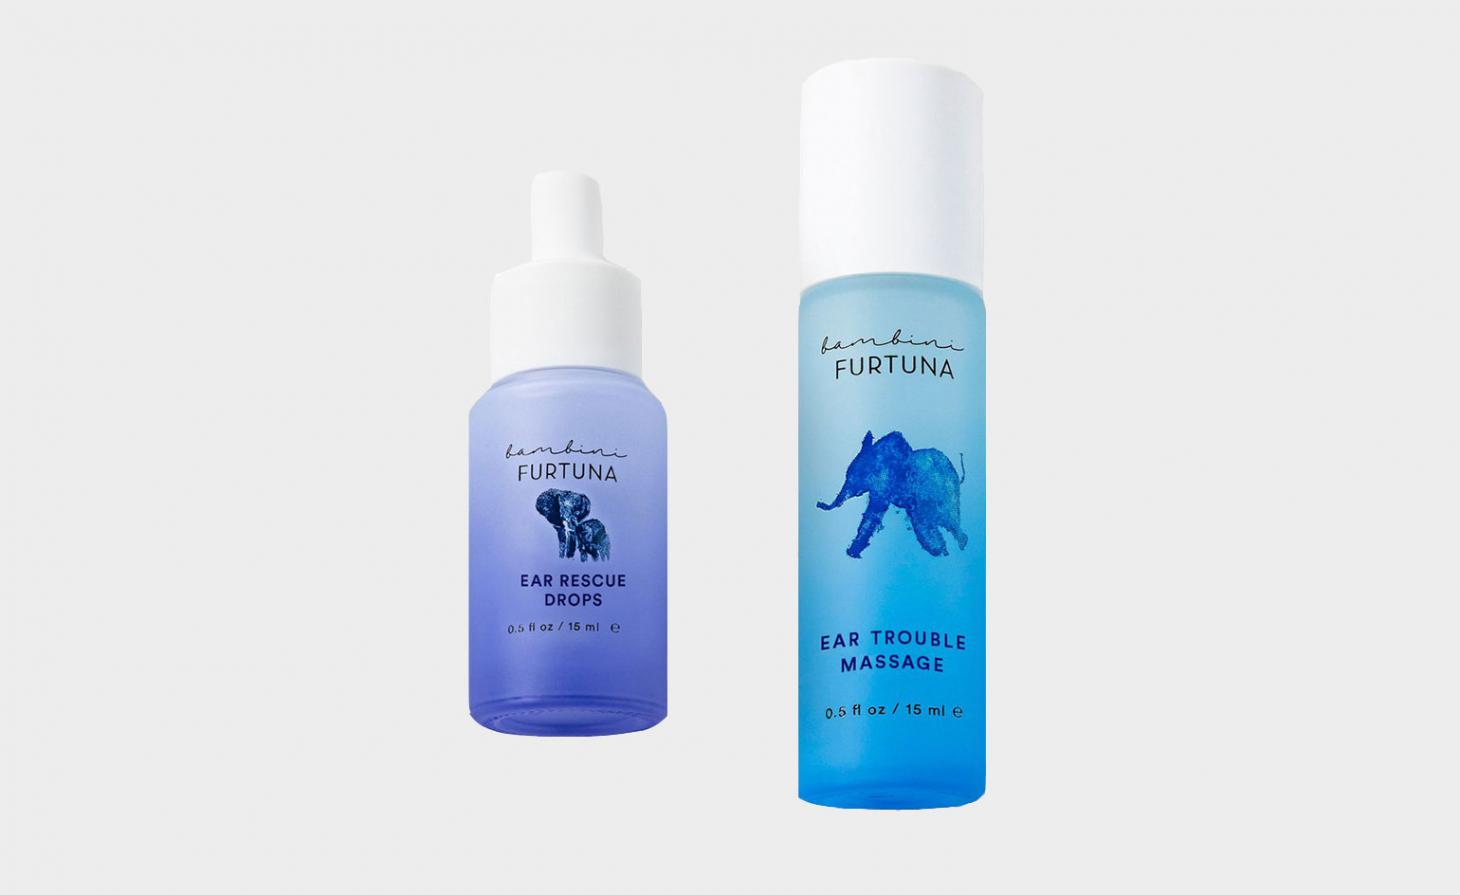 Bambini Furtuna ear rescue drops and ear trouble massage oil against grey background